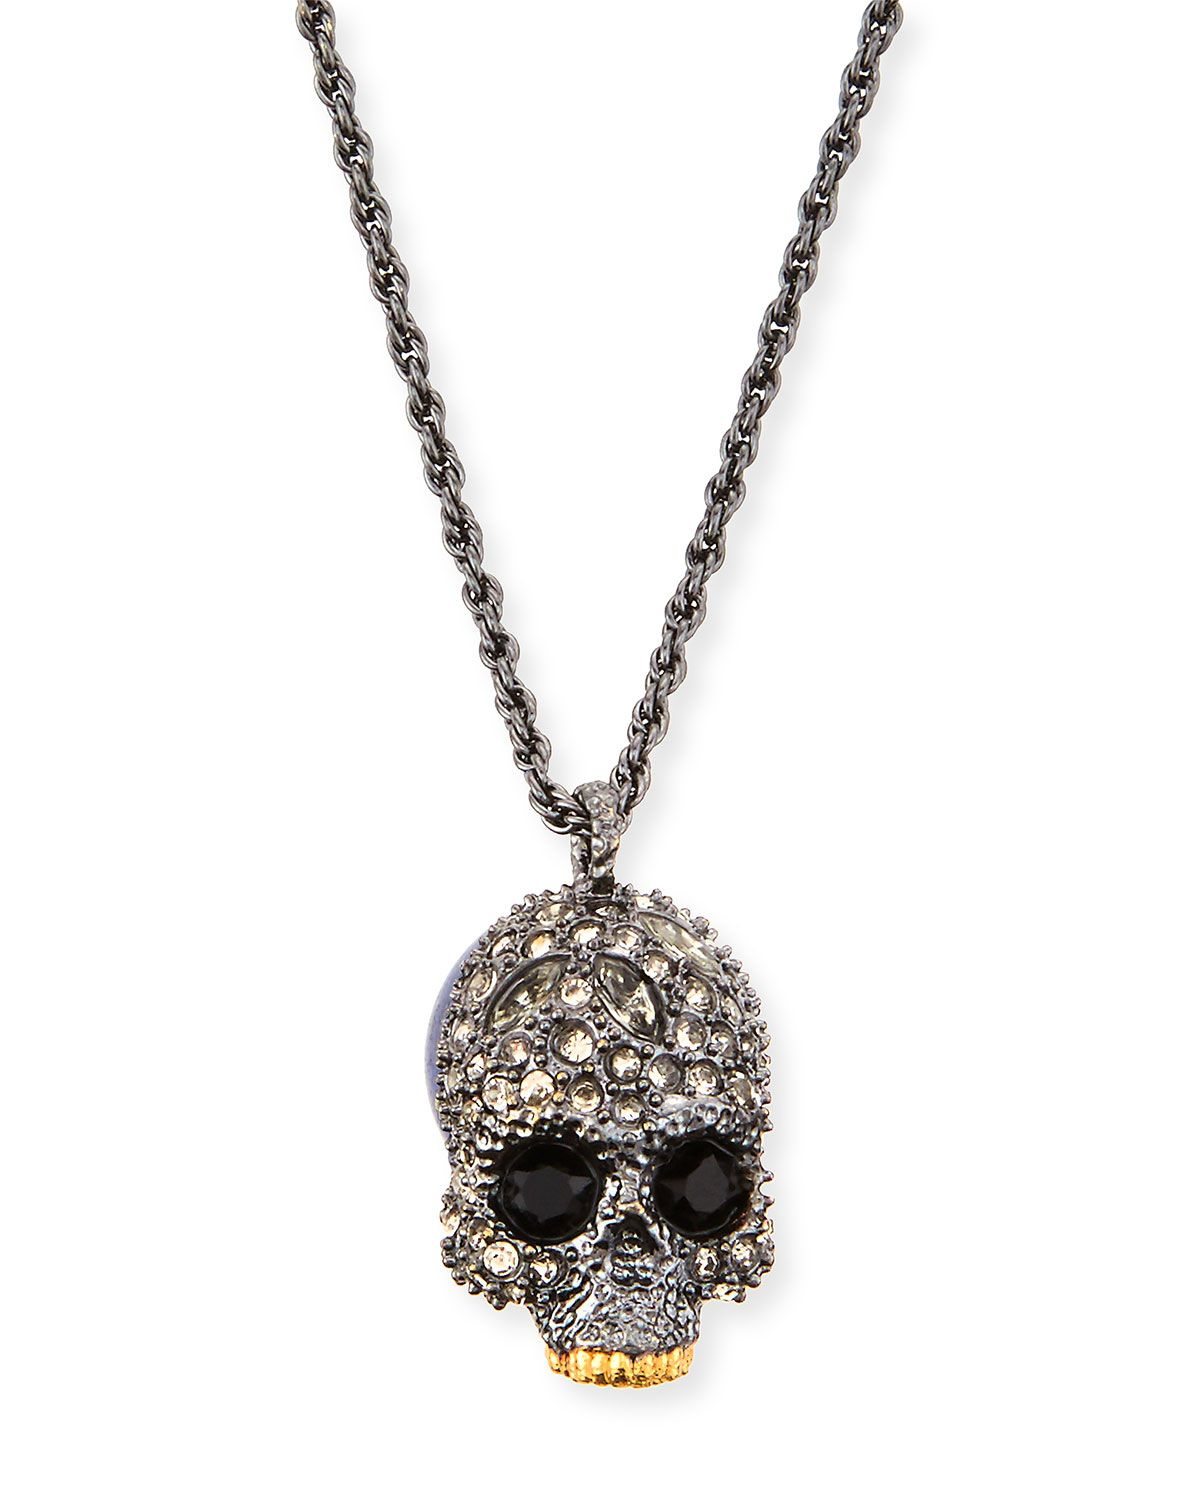 Elements crystal skull pendant necklace silver alexis bittar alexis bittar elements crystal skull pendant necklace aloadofball Choice Image